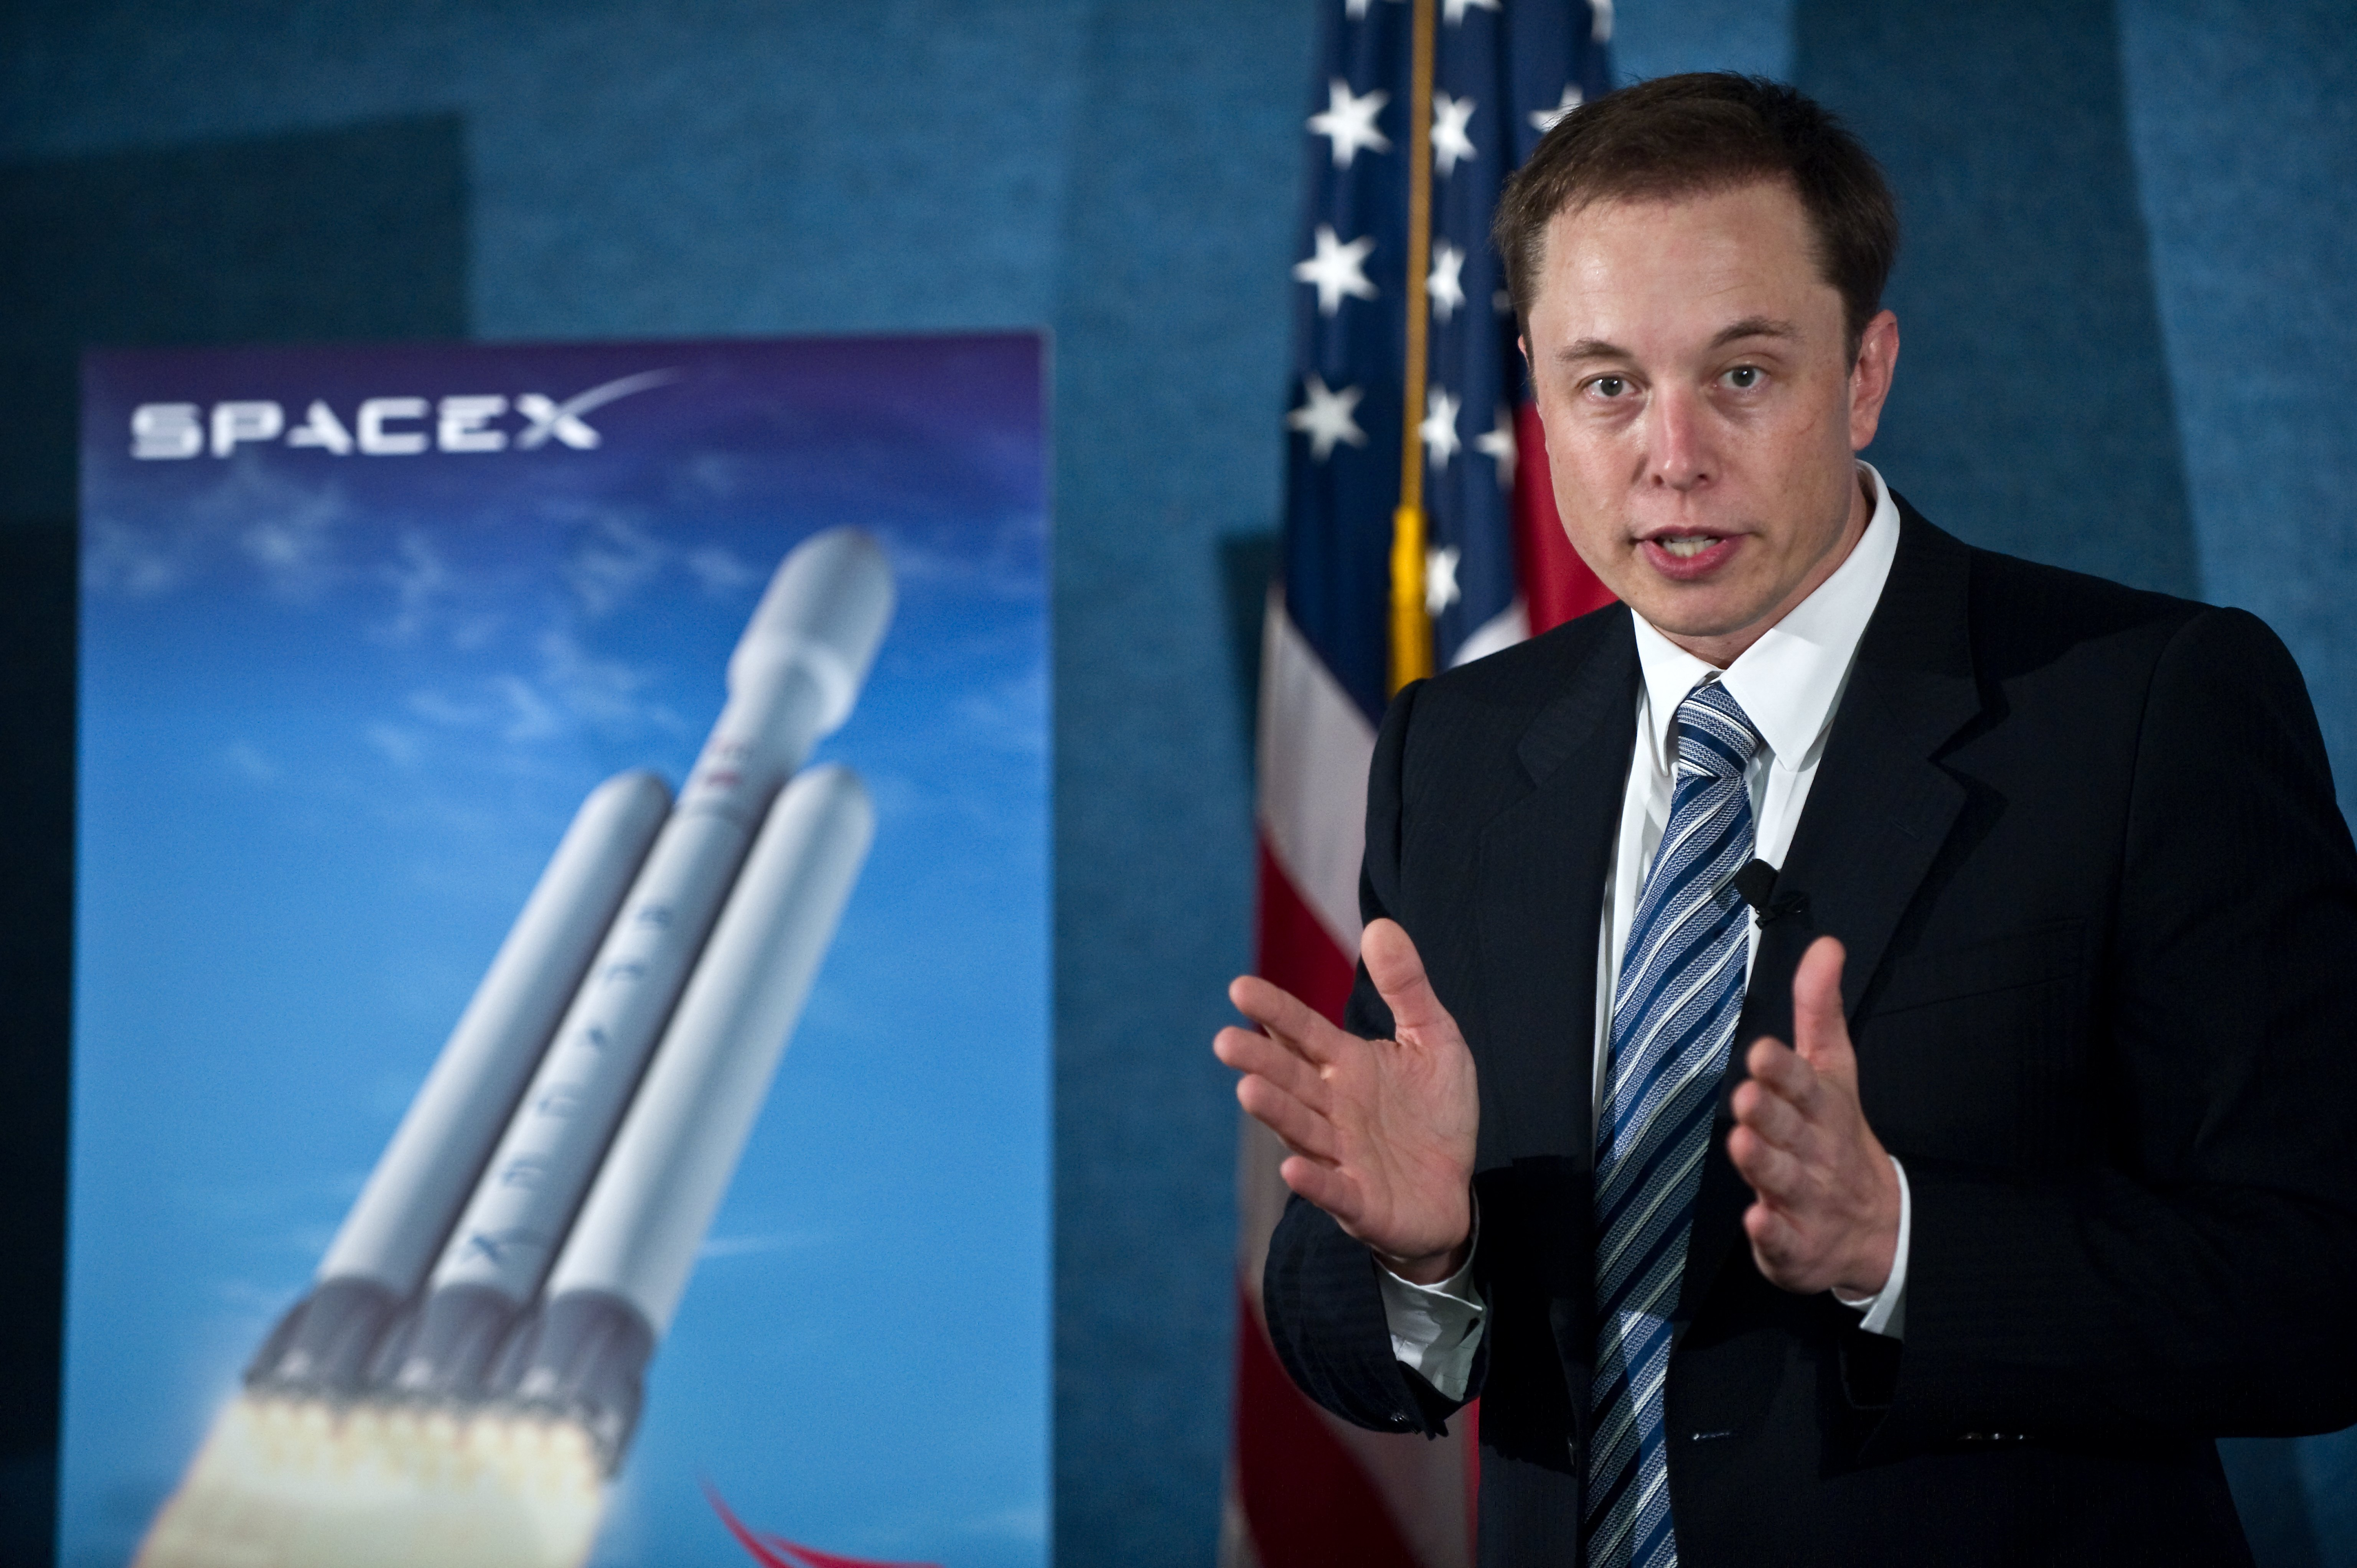 SpaceX CEO Elon Musk unveils the Falcon Heavy rocket at the National Press Club in Washington on April 5, 2011. (NICHOLAS KAMM/AFP/Getty Images)